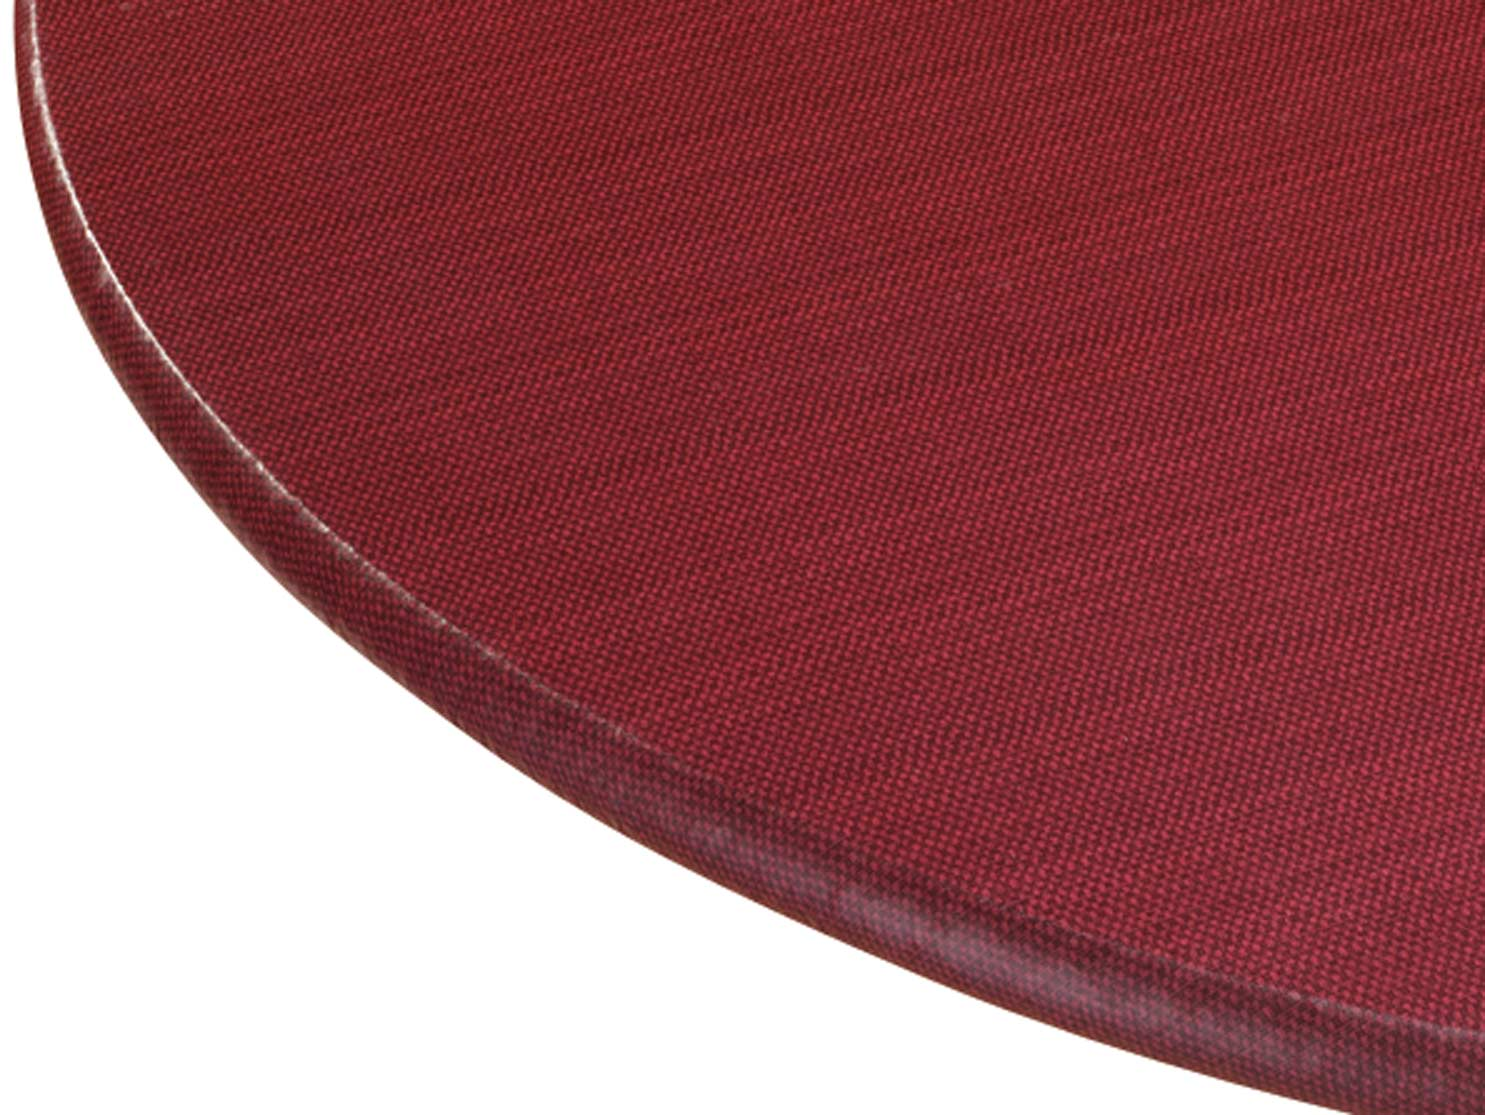 Miles Kimball Classic Weave Vinyl Elasticized Fitted Table